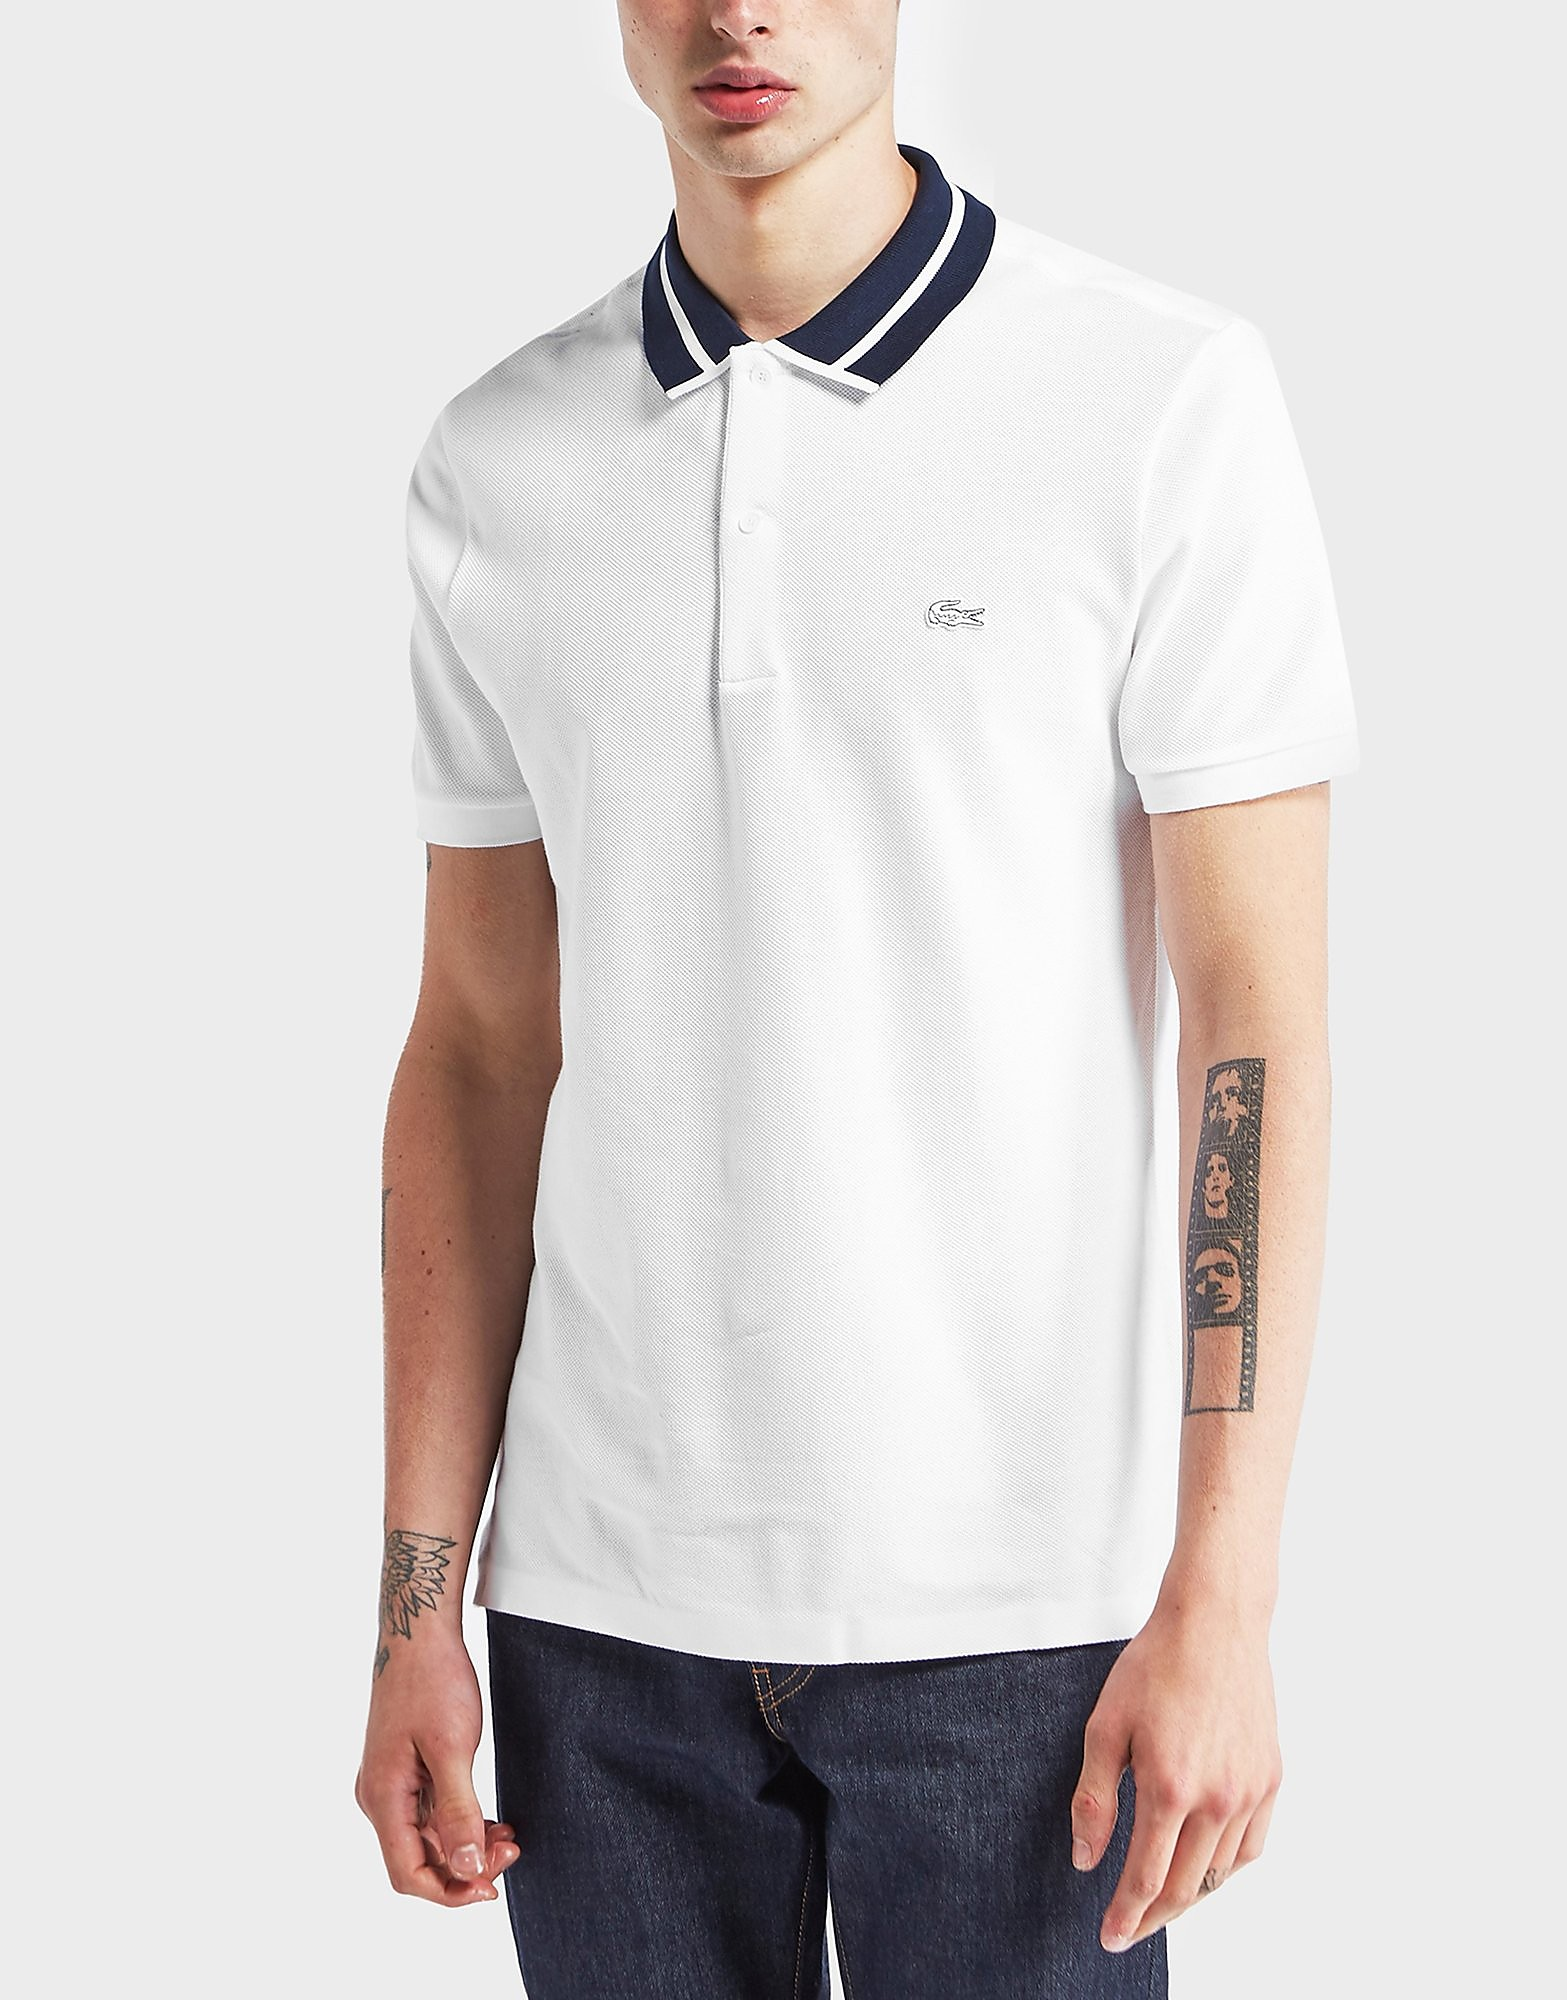 Lacoste Tonal Croc Pique Short Sleeve Polo Shirt